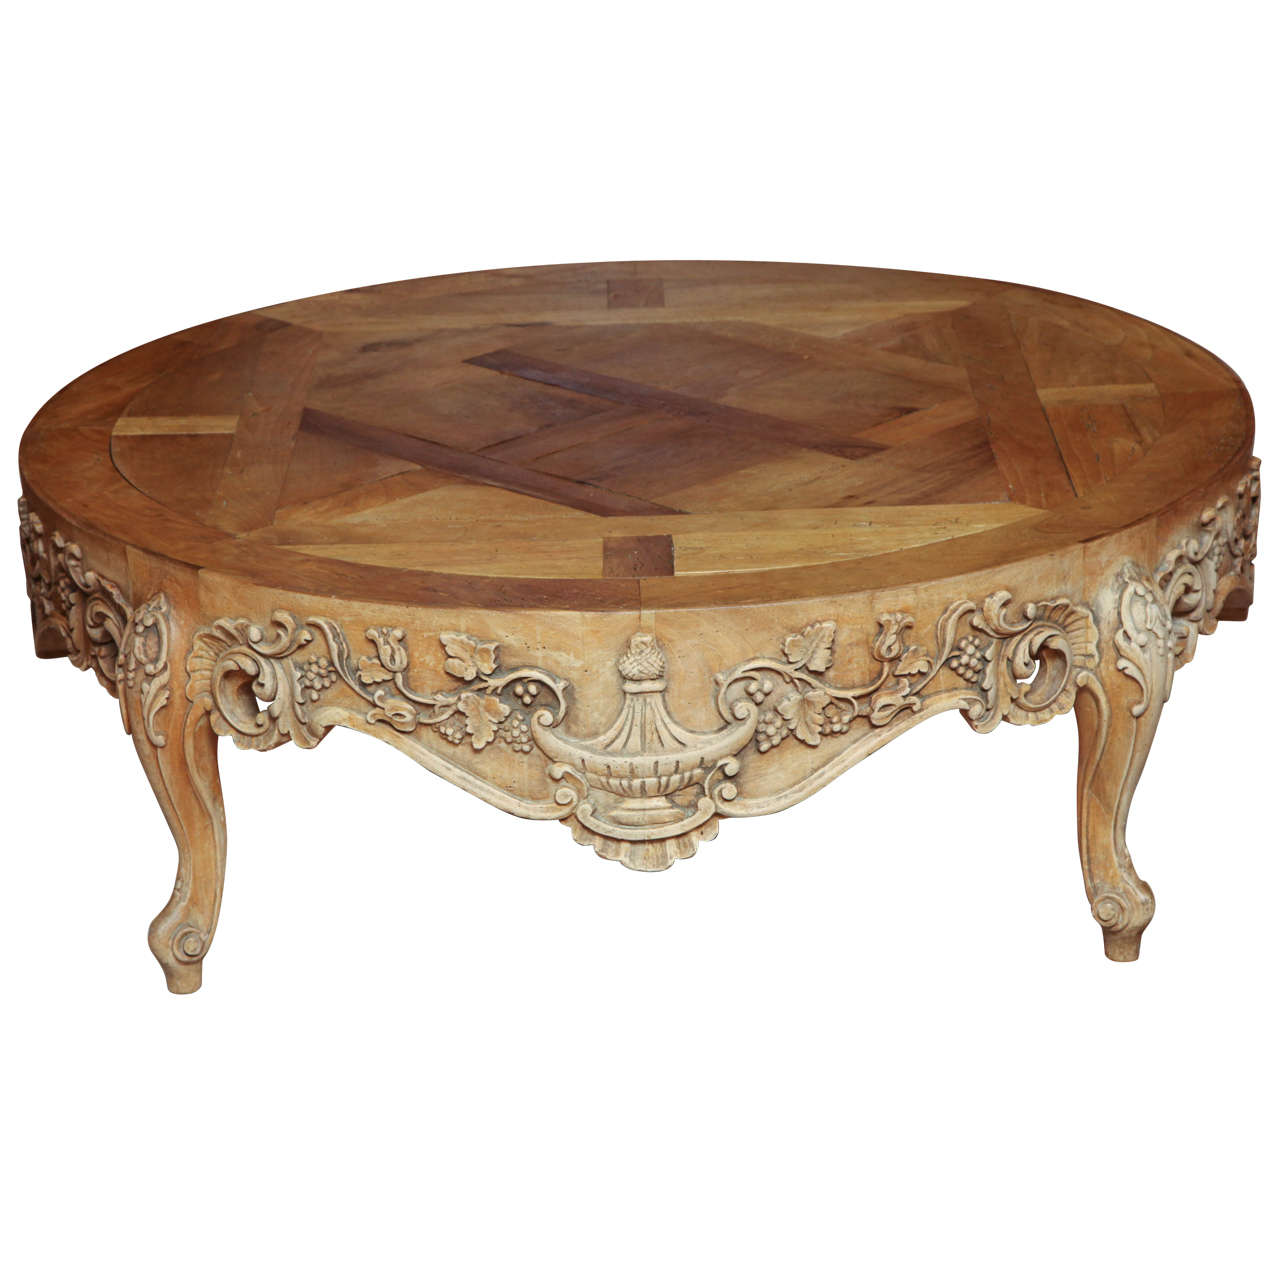 French Provincial Oval Coffee Table: French Provincial Round Oak Cocktail Table At 1stdibs